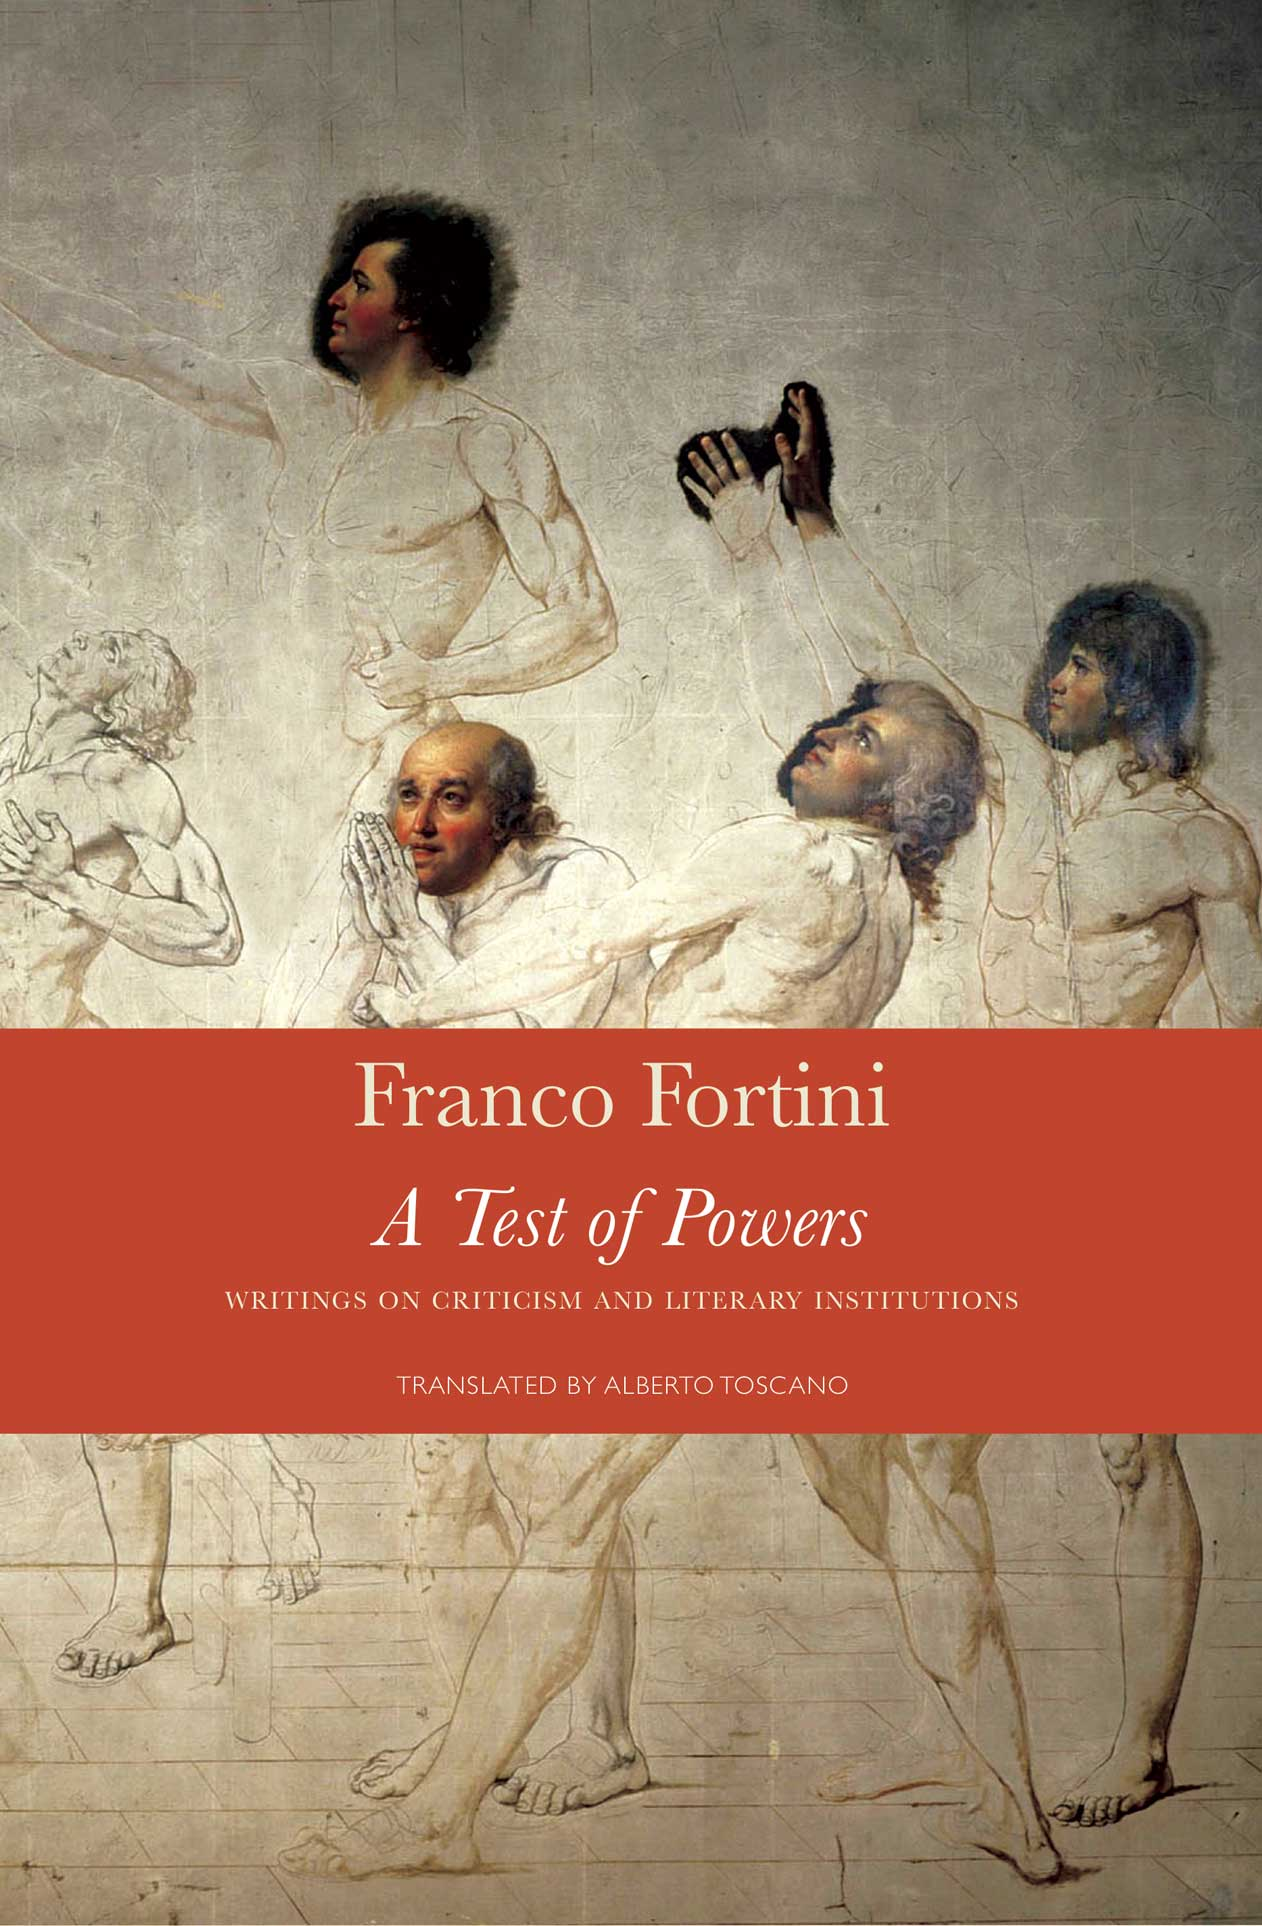 A Test of Powers: Writings on Criticism and Literary Institutions by Franco Fortini | Seagull Books